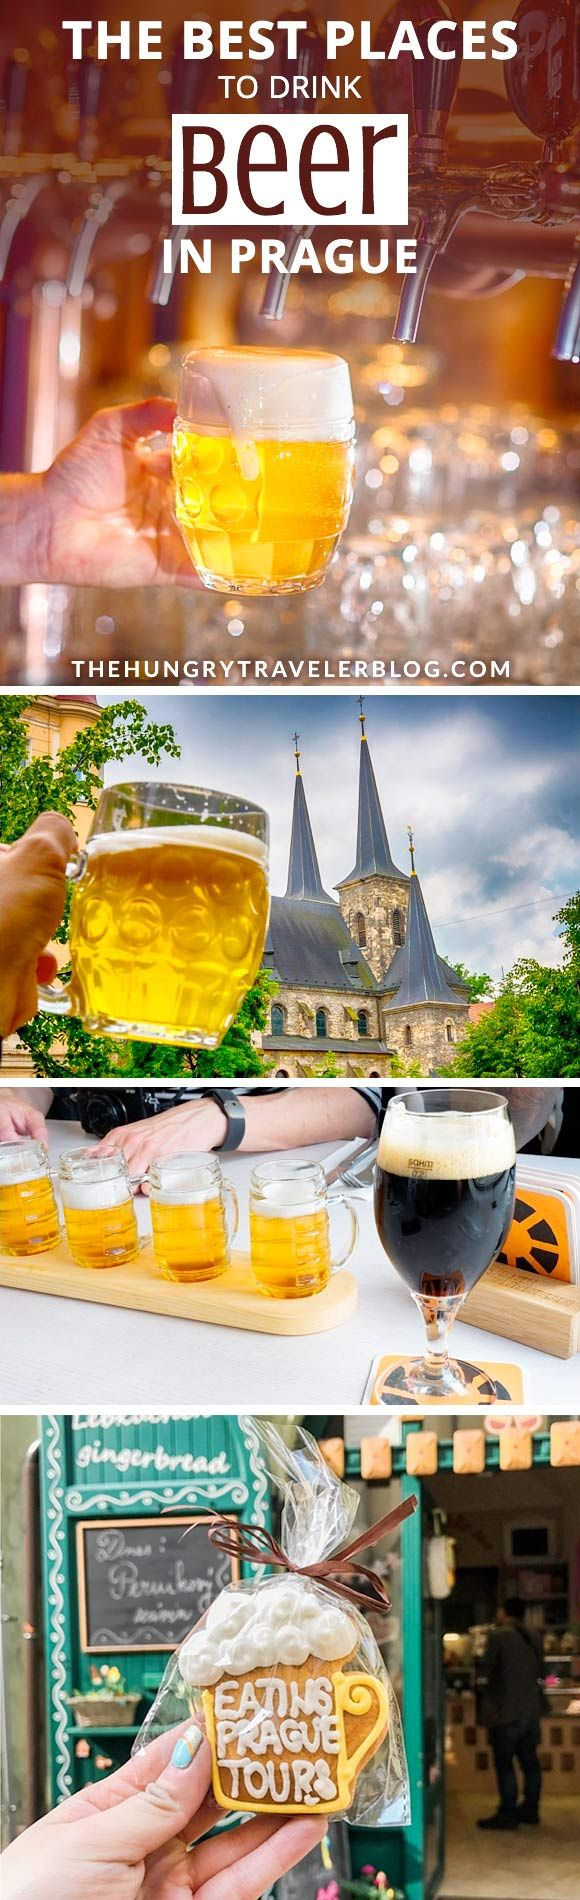 The absolute best places to drink beer in Prague!! All of these places have GREAT BEER and AMAZING VIEWS of the beautiful city!